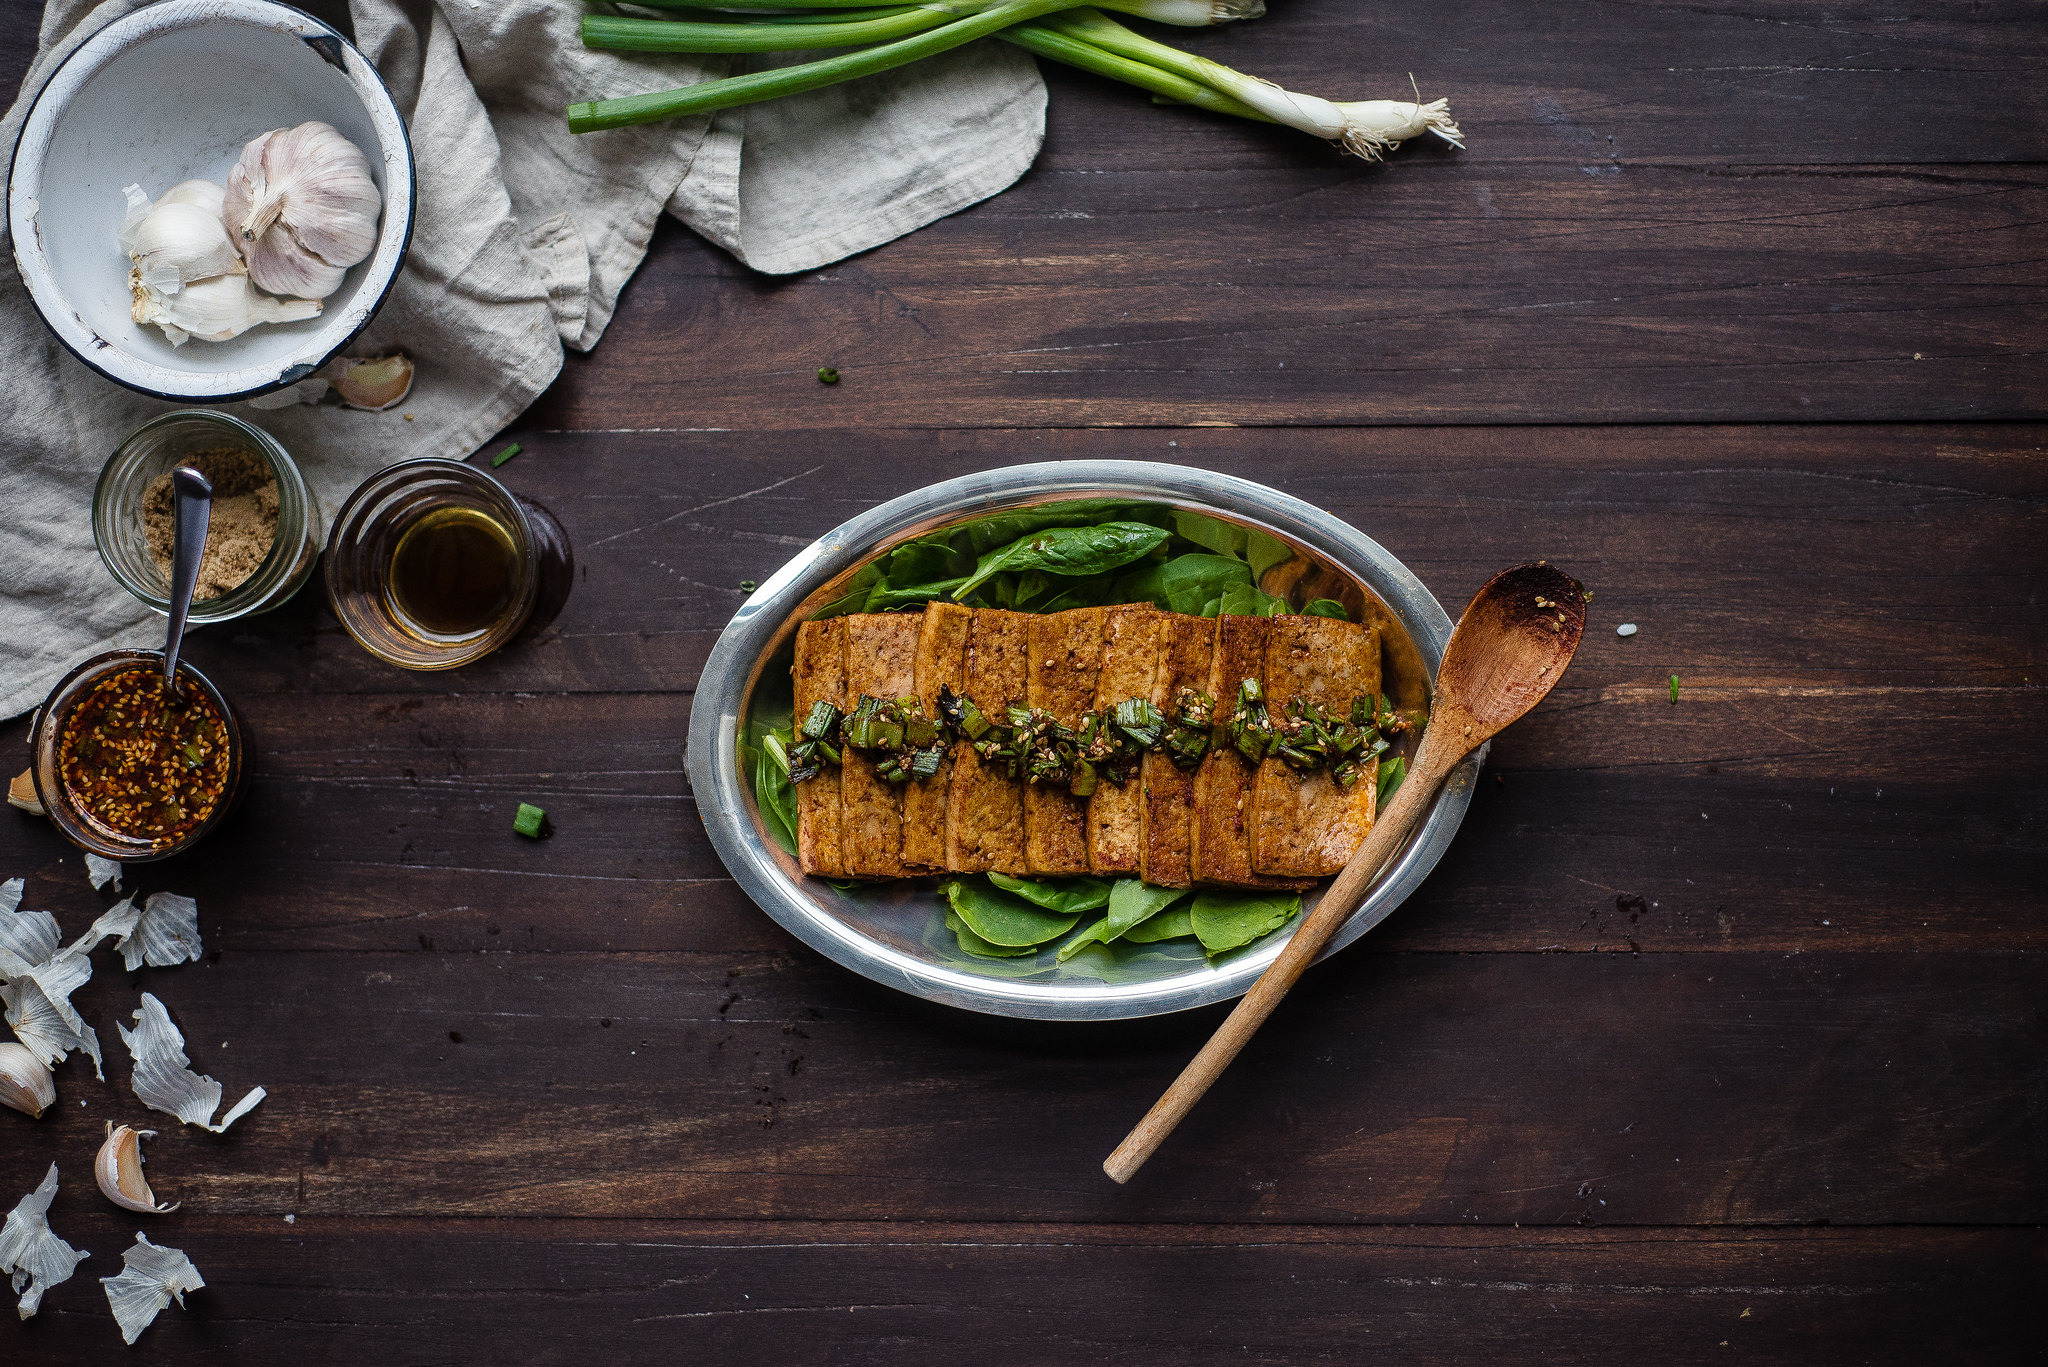 dubu jorim (korean soy-braised tofu)